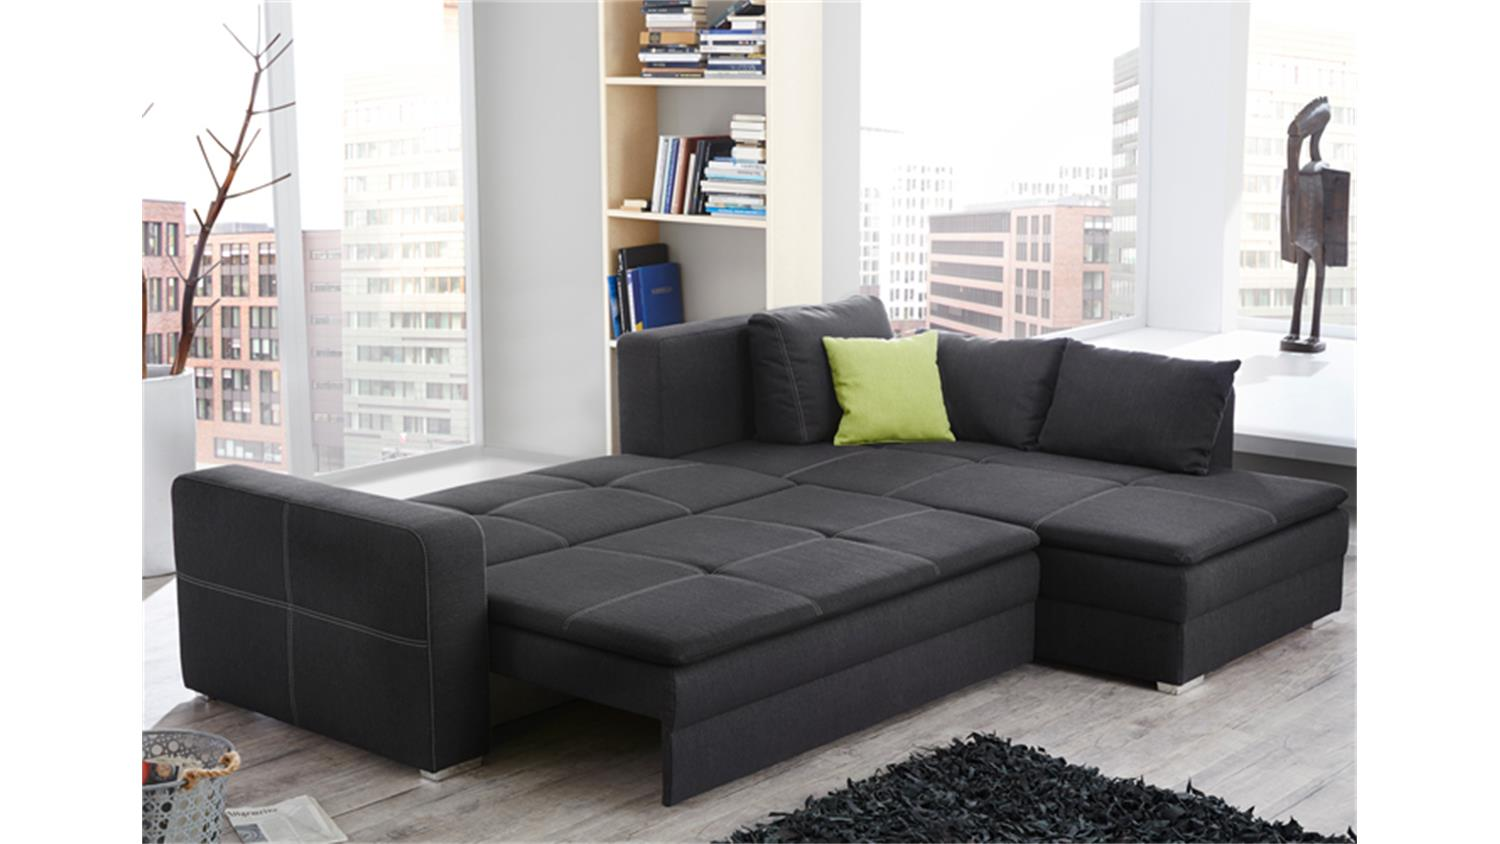 Ecksofa domino stoff dunkelgrau mit bettfunktion for Ecksofa dunkelgrau